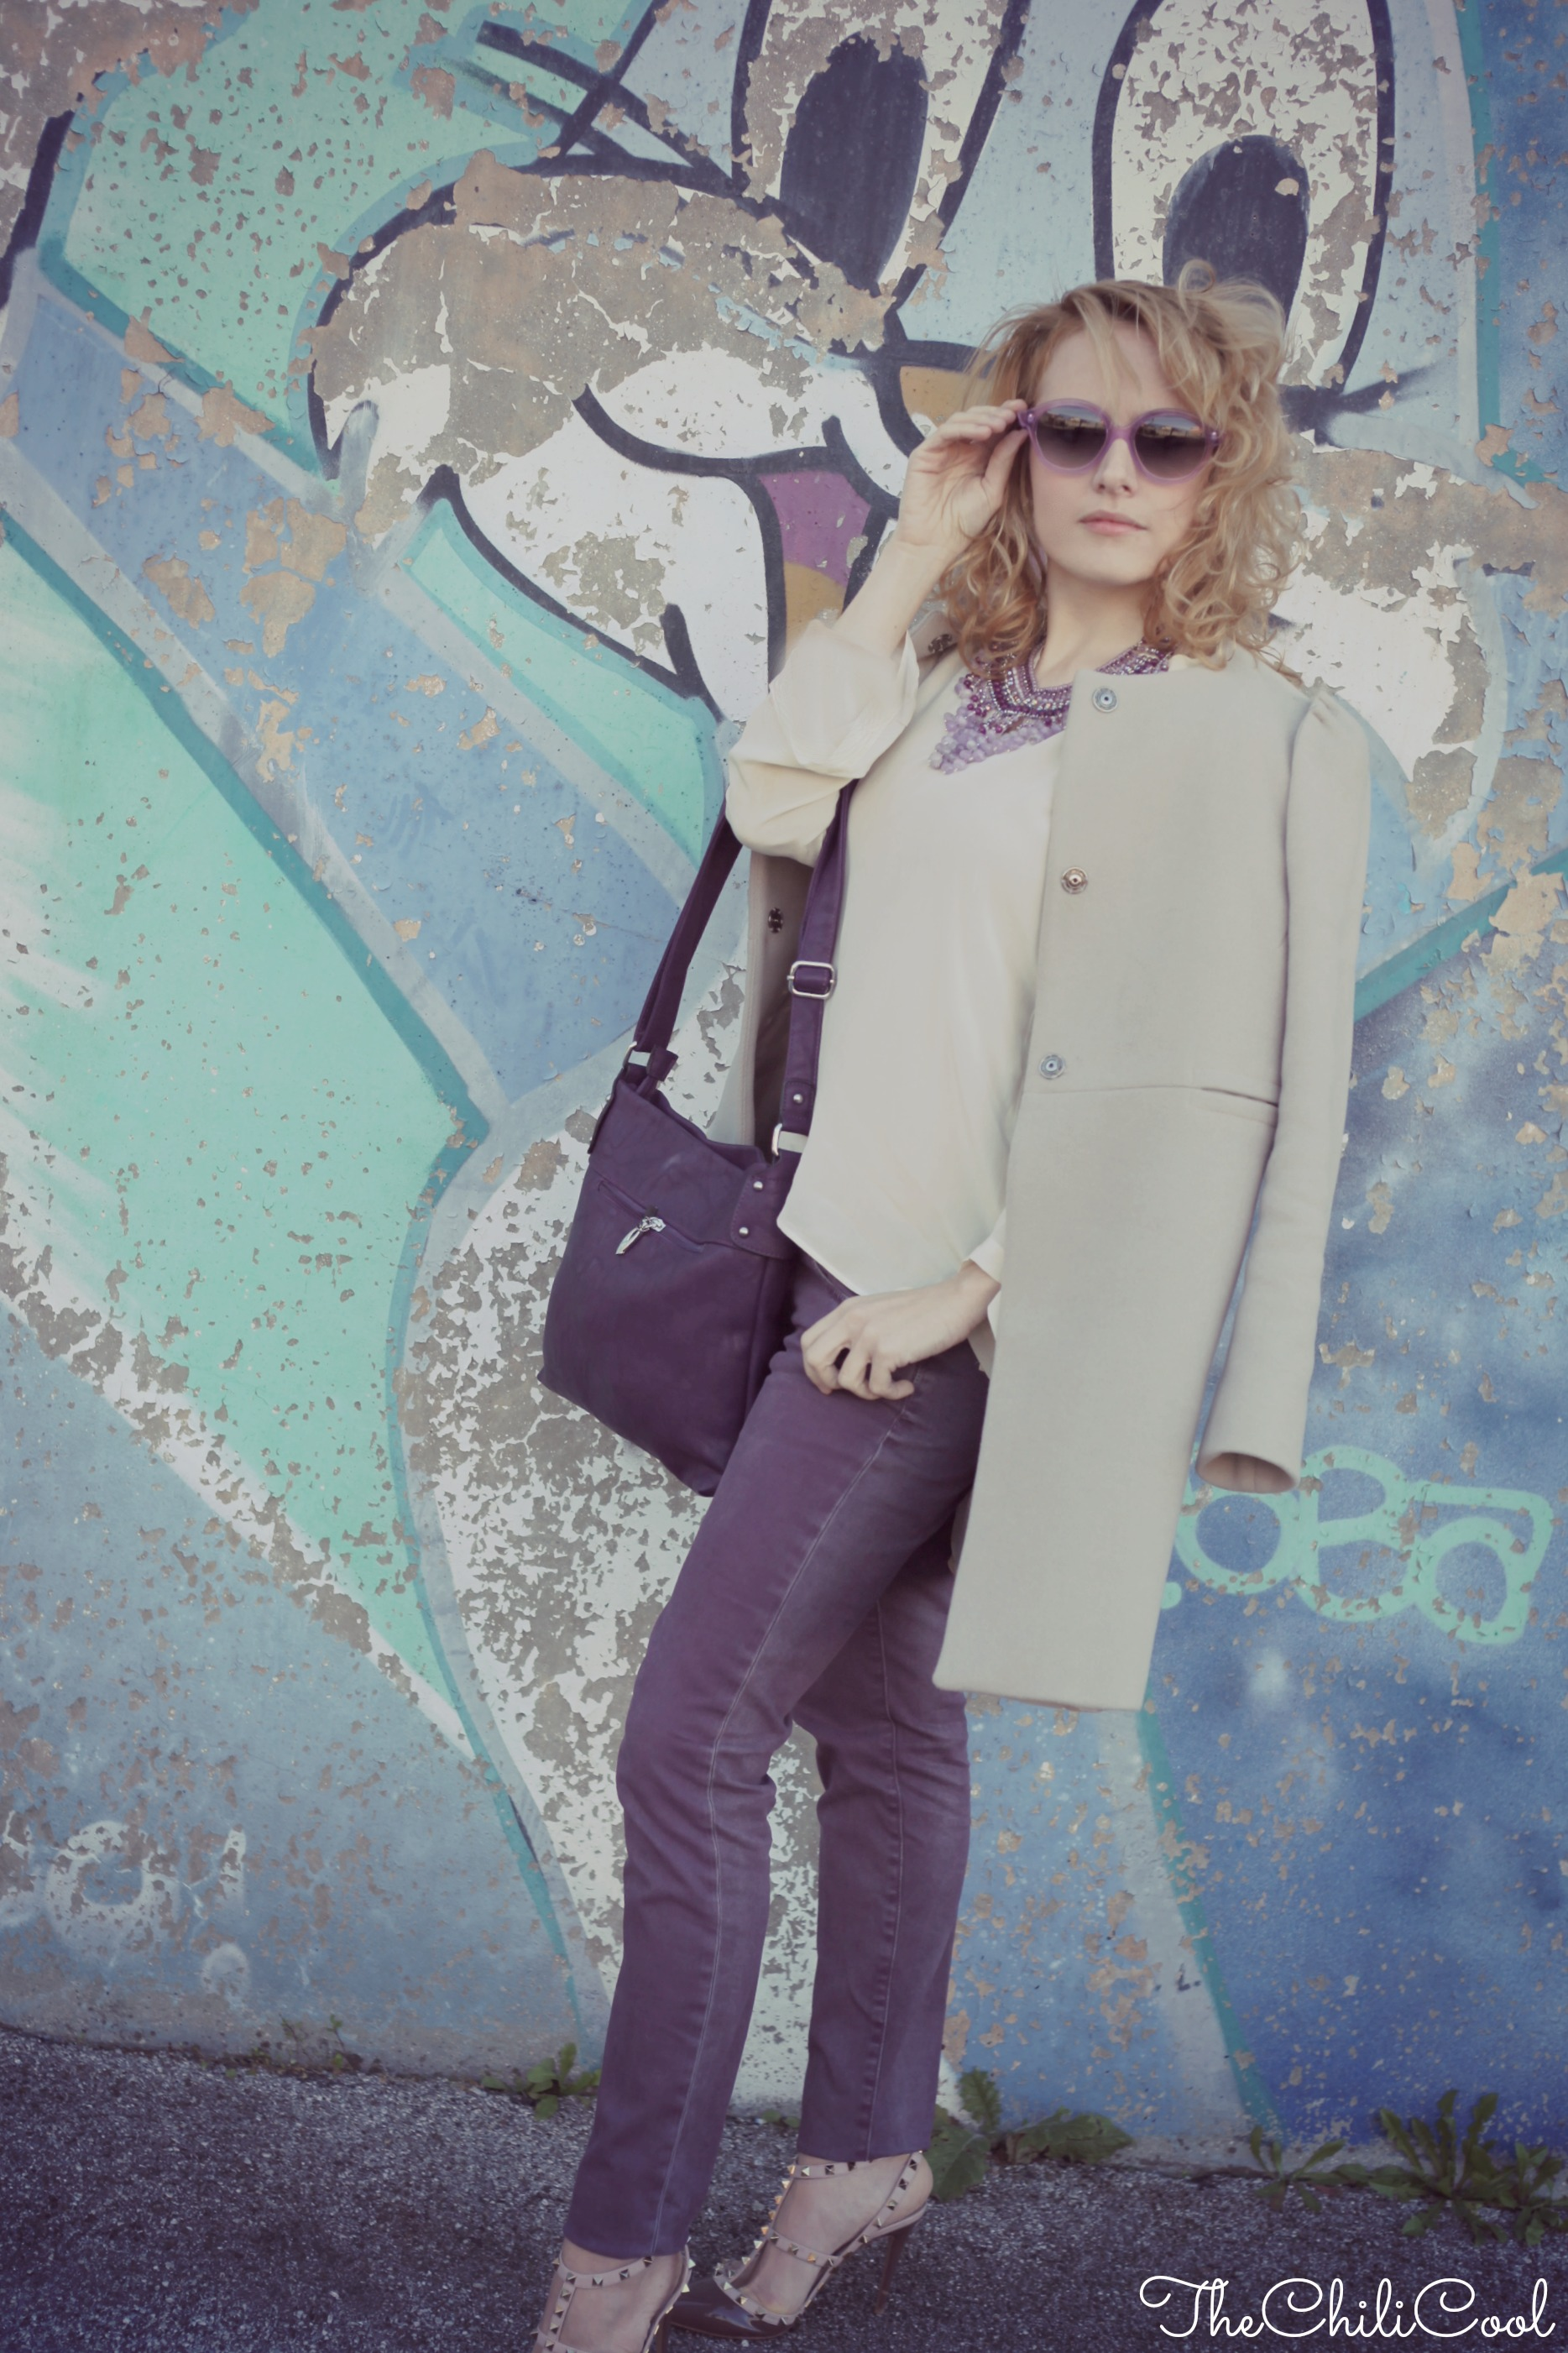 alessia milanese, thechilicool, fashion blog, fashion blogger,#2w2m #urbancharm graffiti metropolitani ad udine , valentino shoes